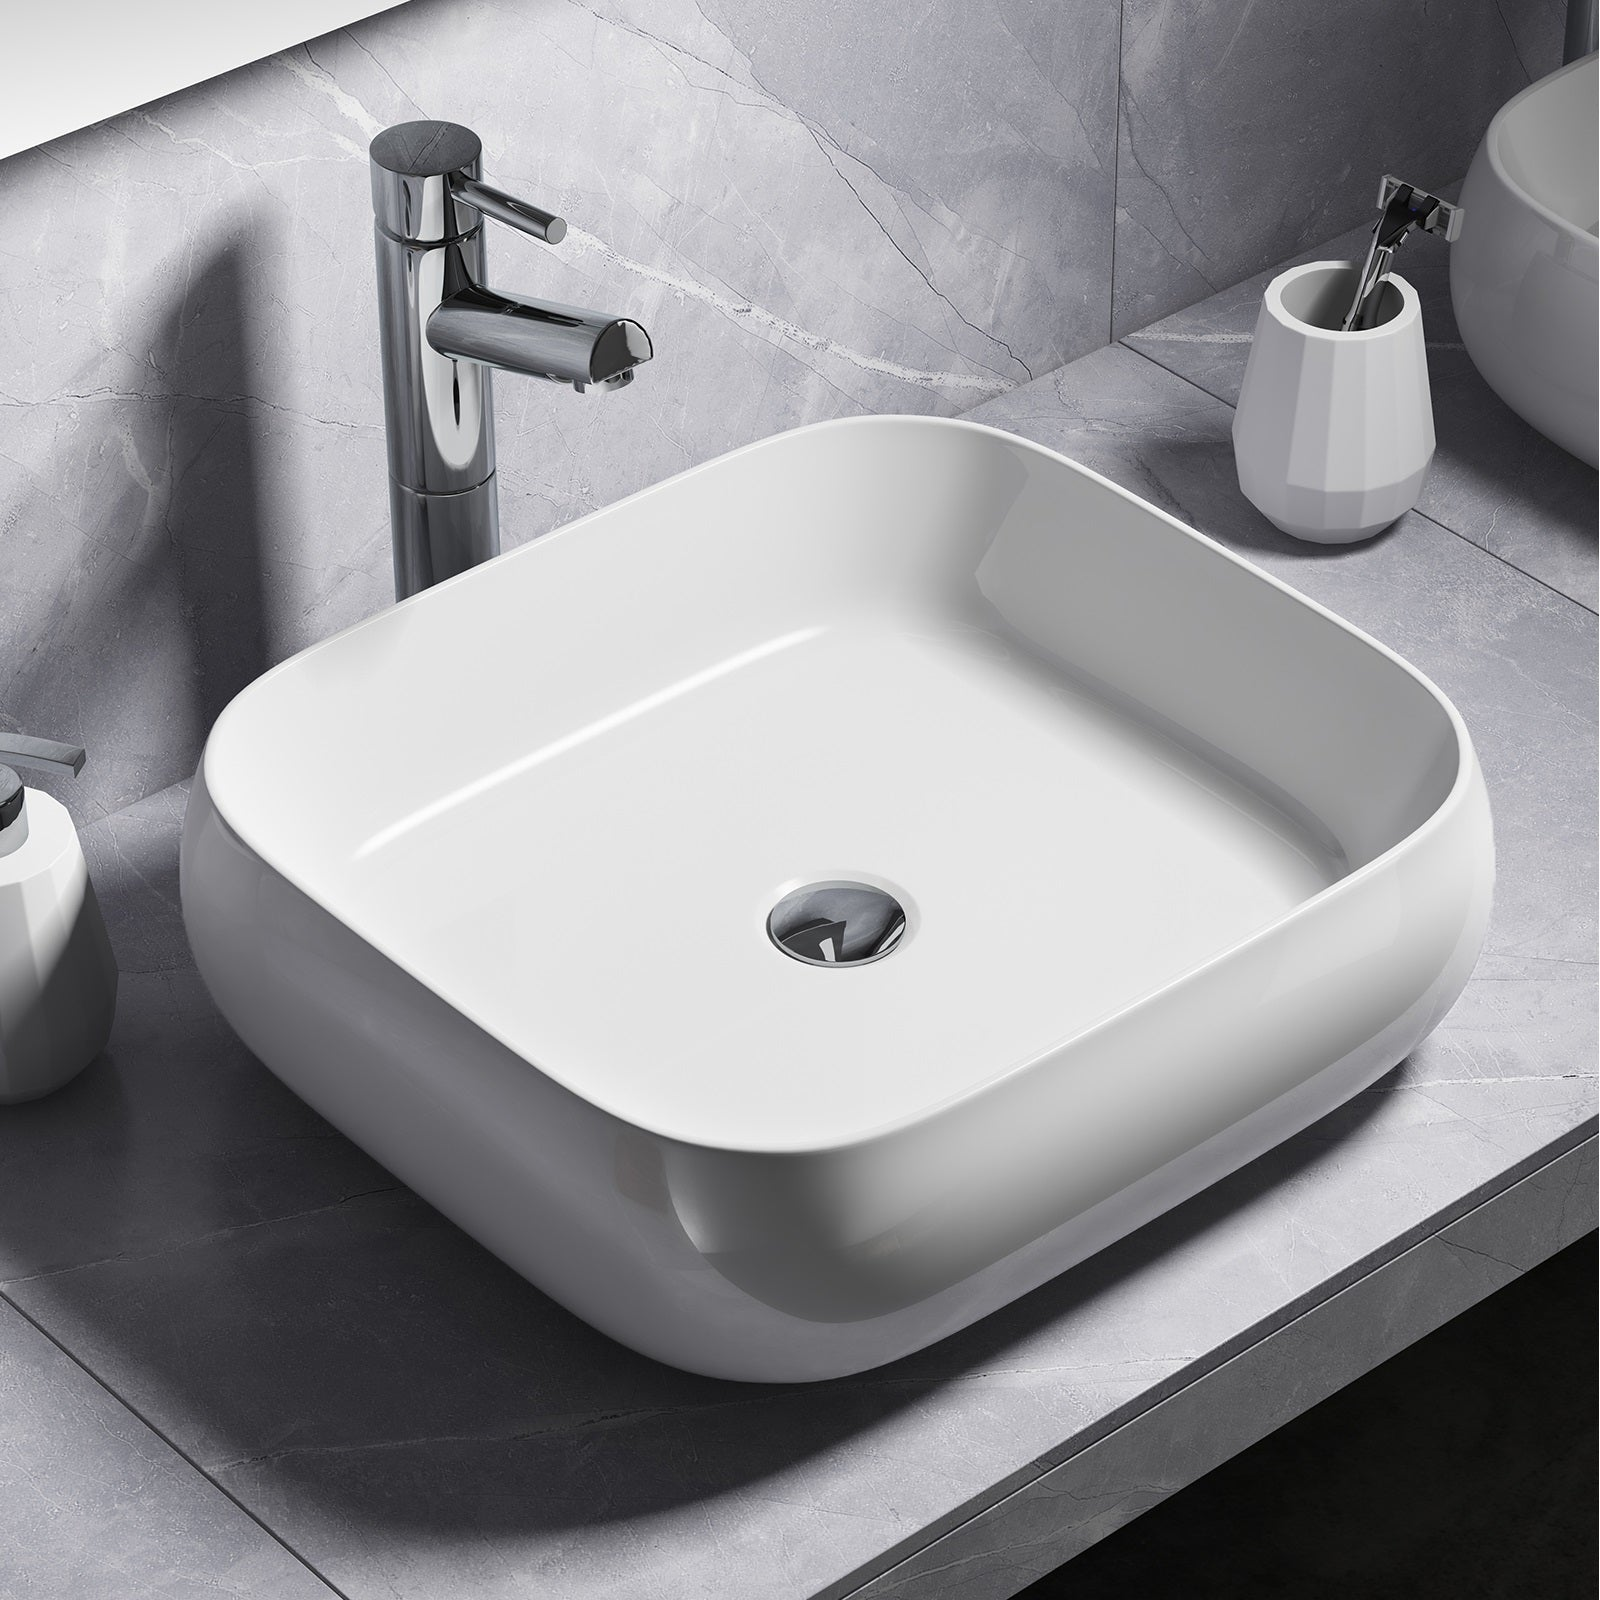 Improve your bathroom with this Rectangular Rounded Counter Top Vessel Ceramic Basin